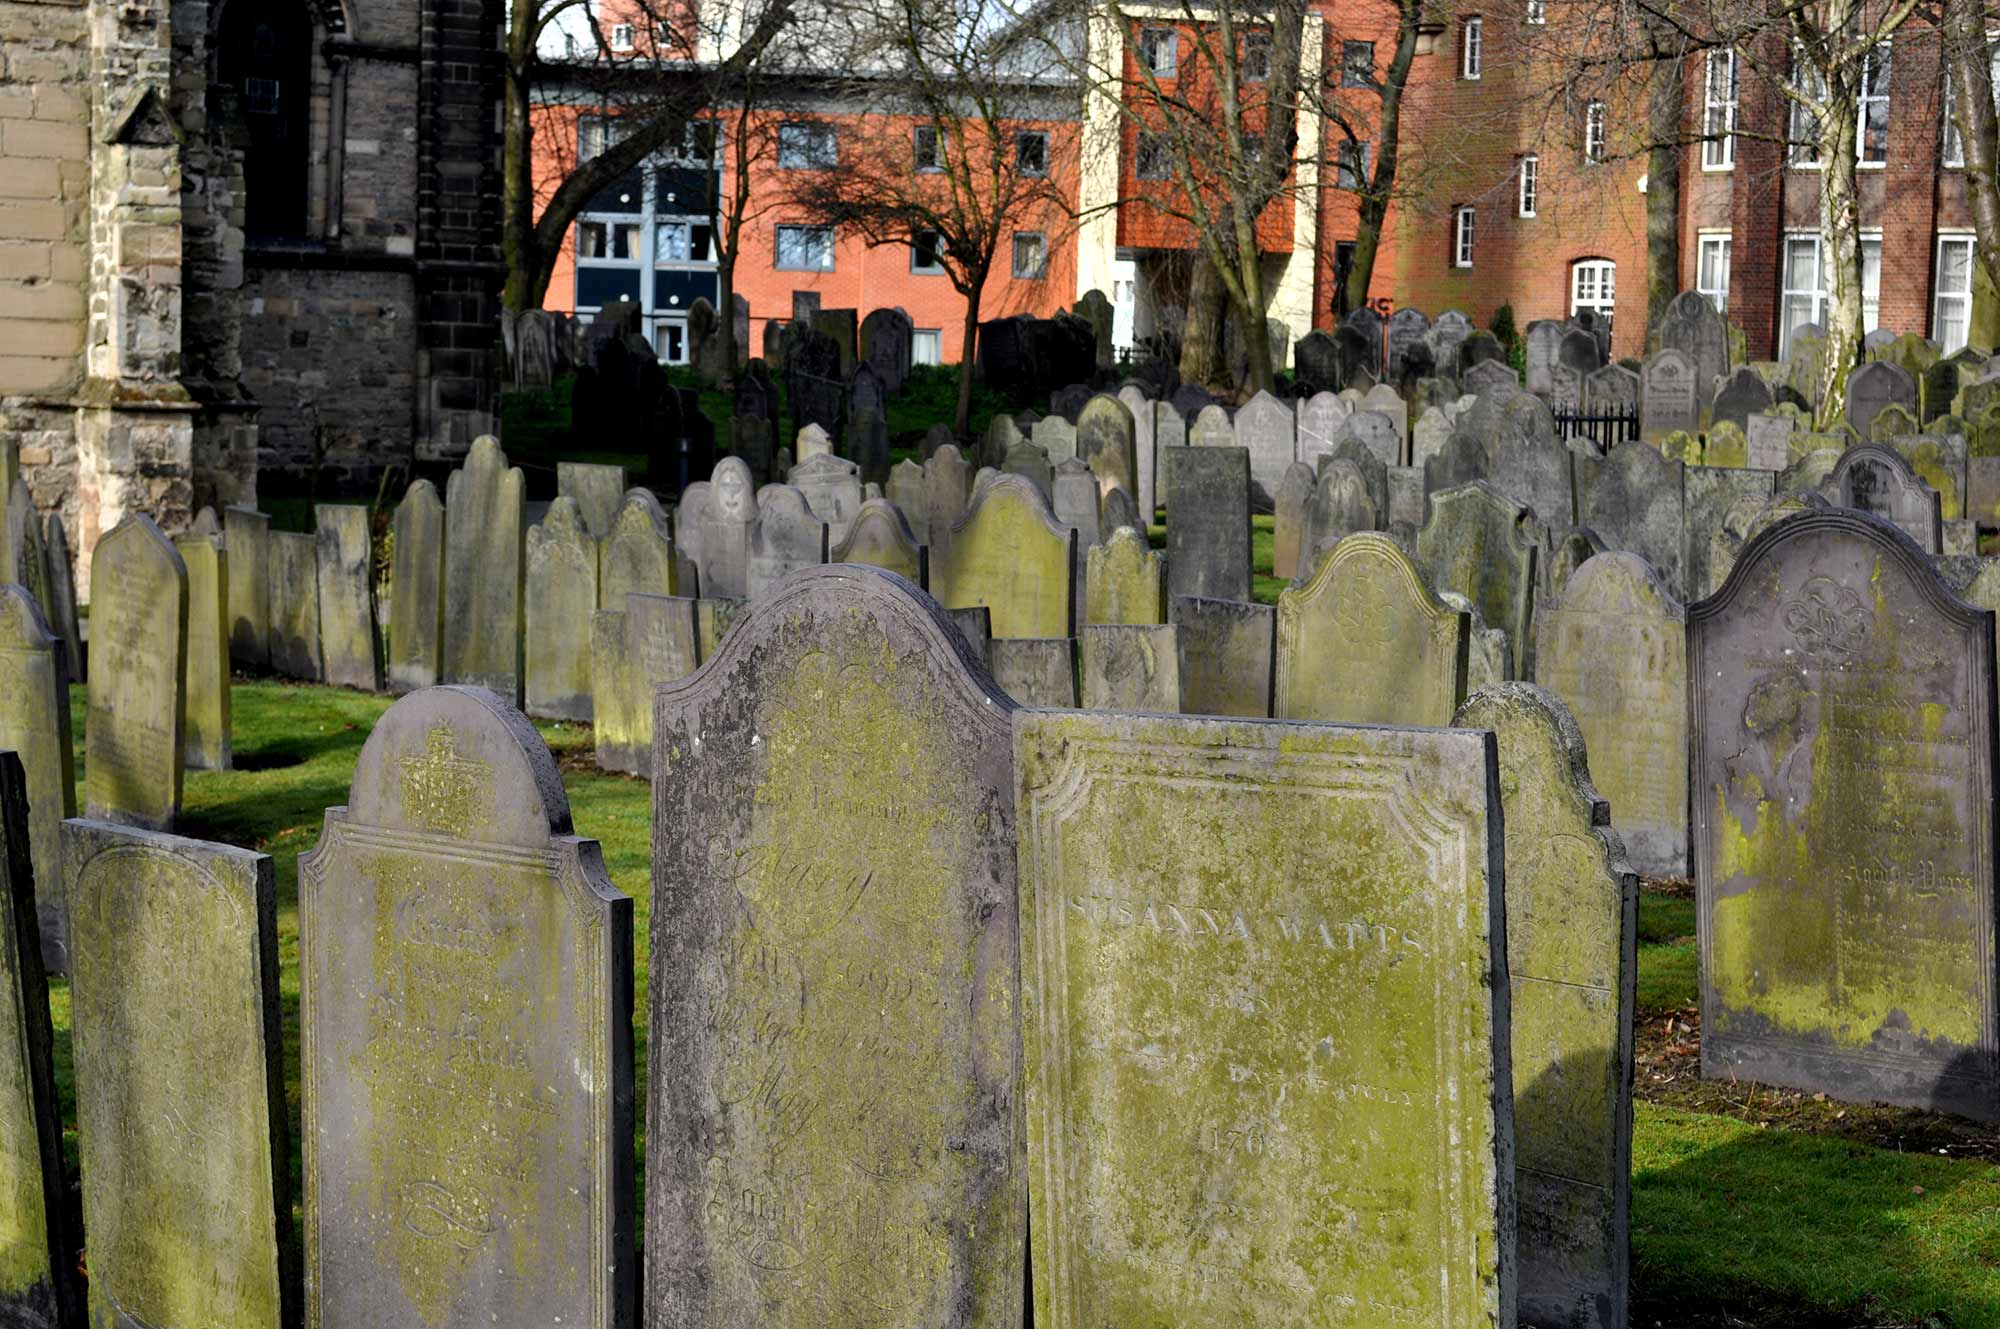 The churchyard houses many old gravestones -